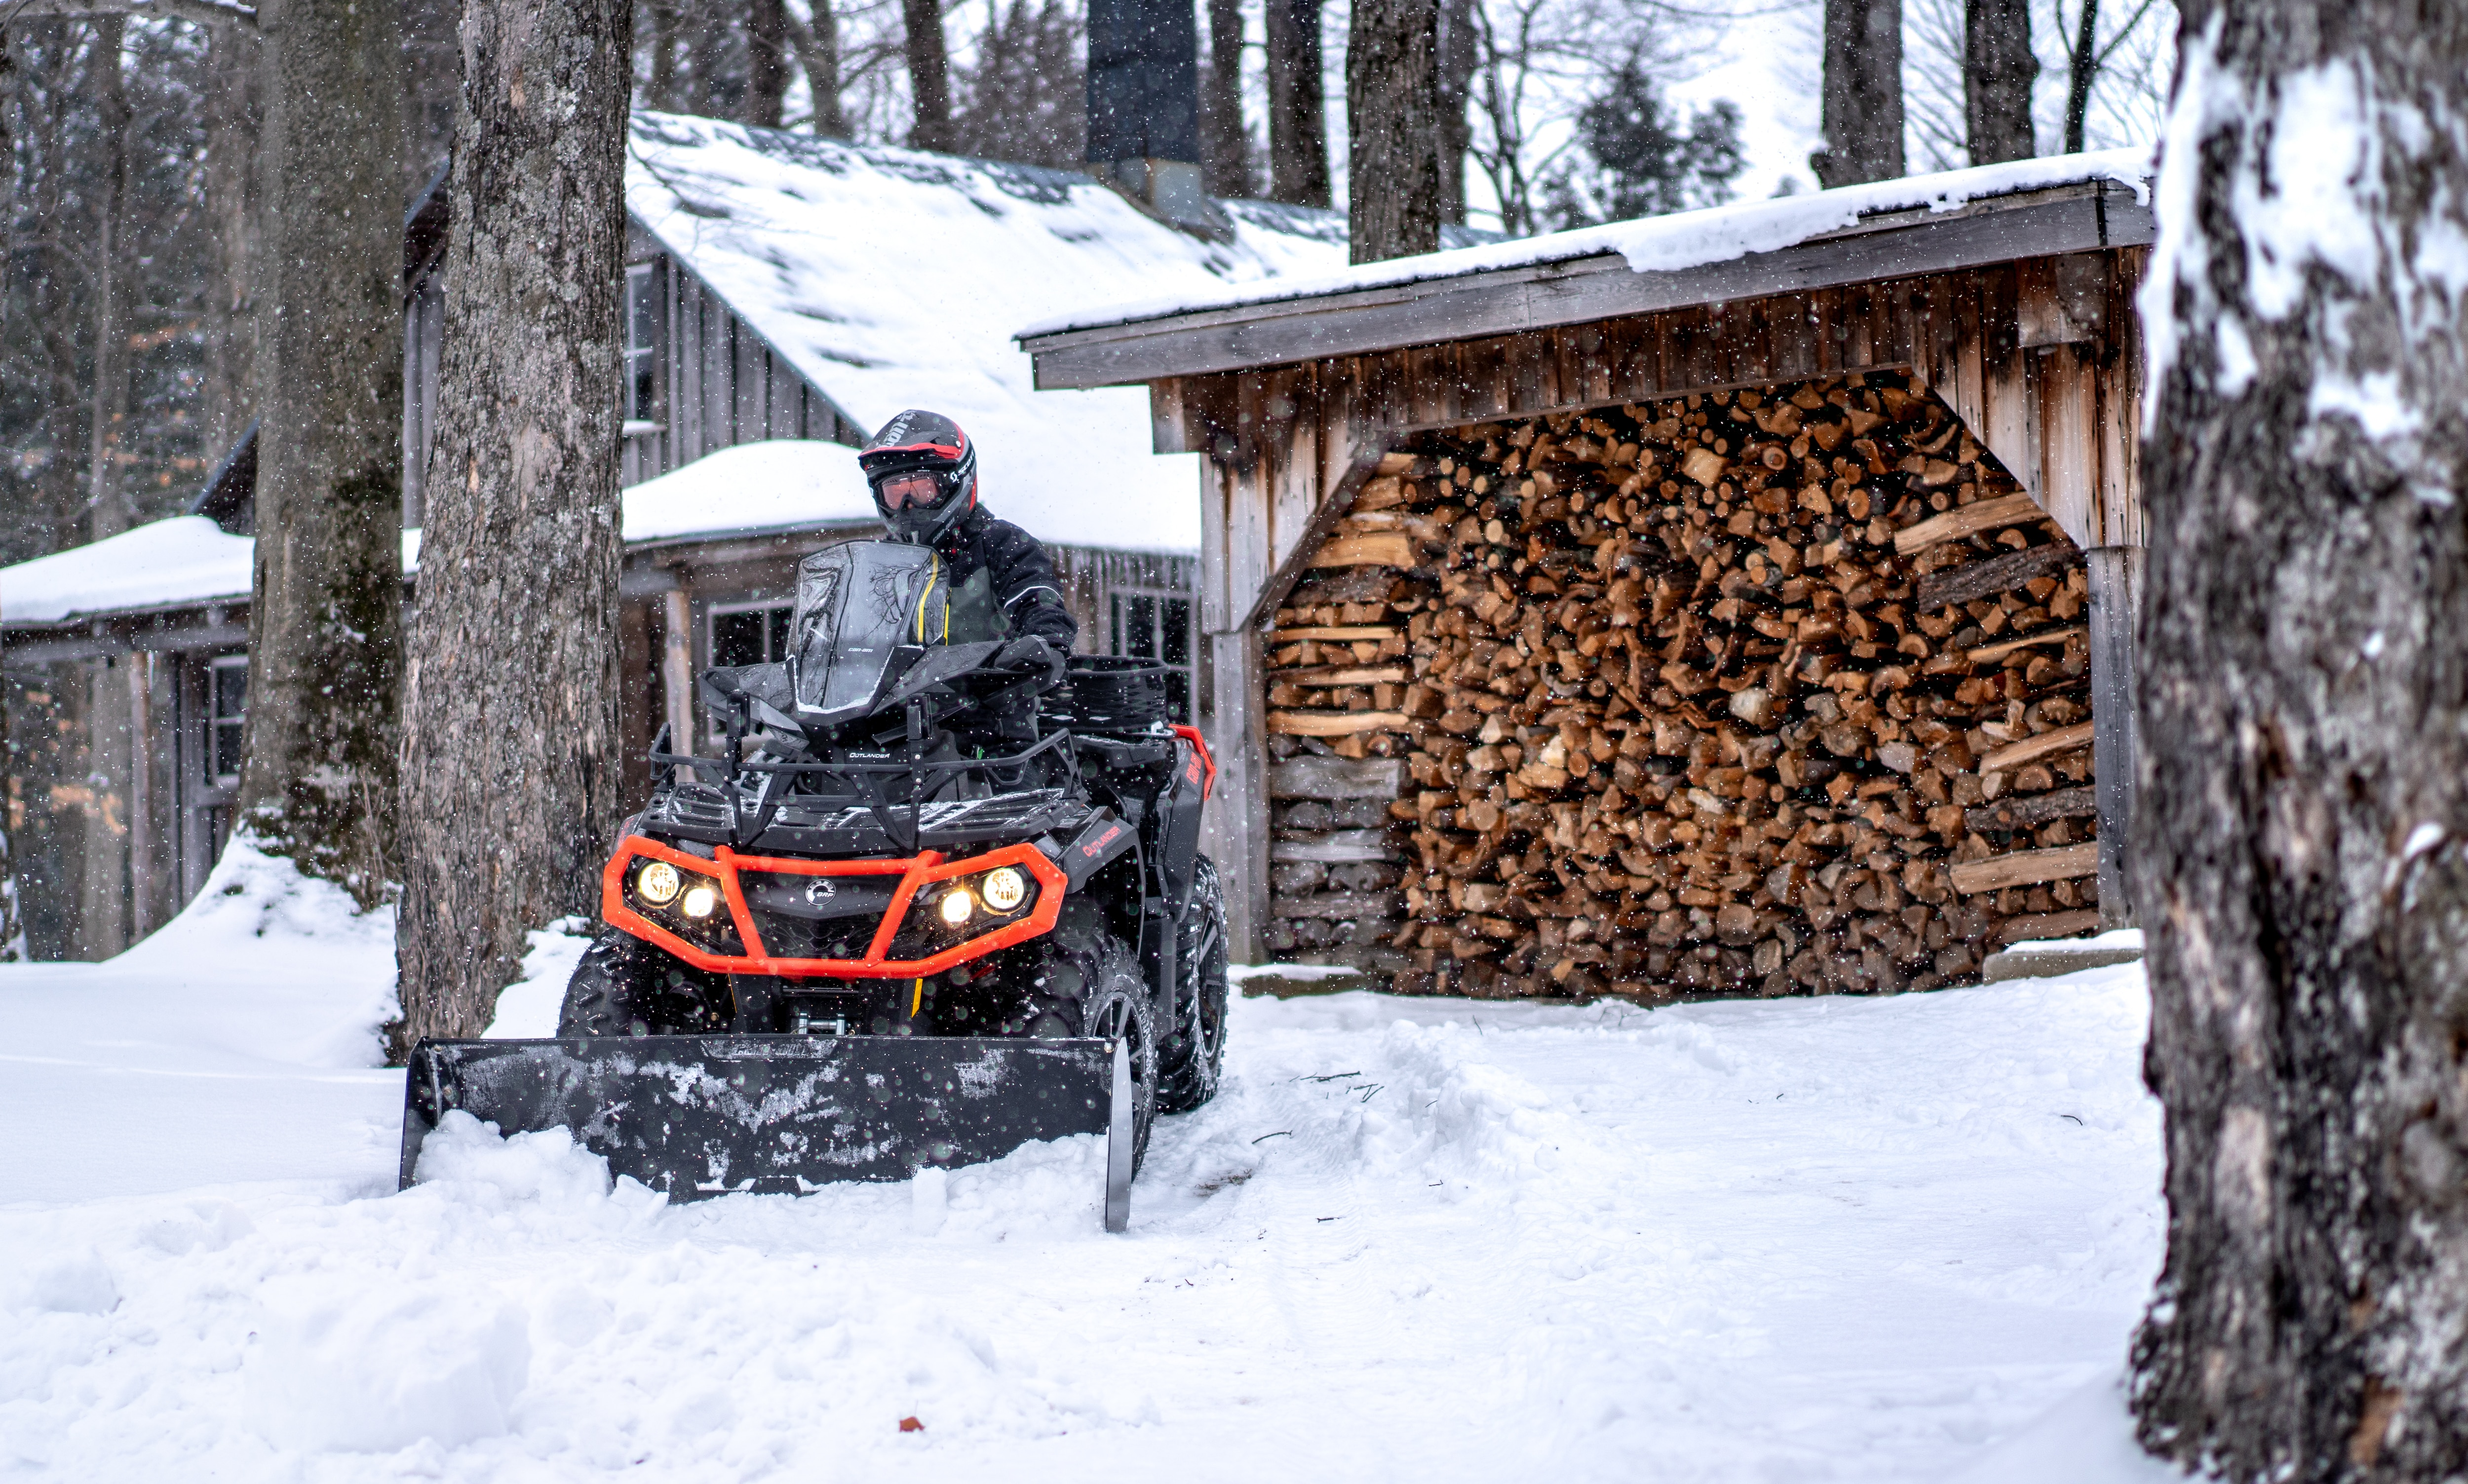 Using your SxS/UTV or ATV for plowing snow and fun in winter